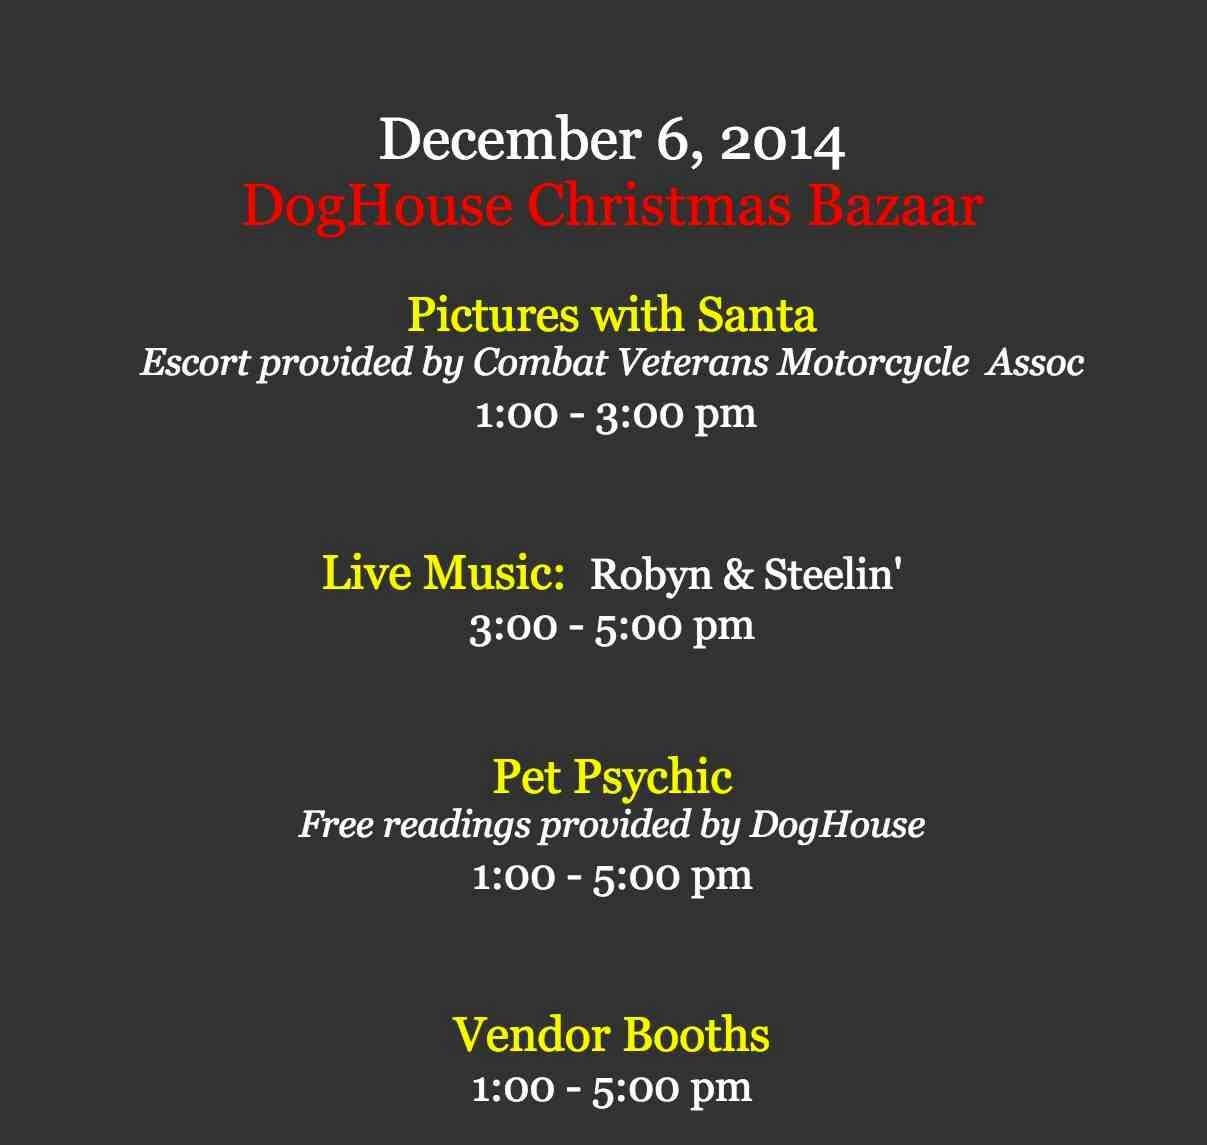 Doghouse Bazaar